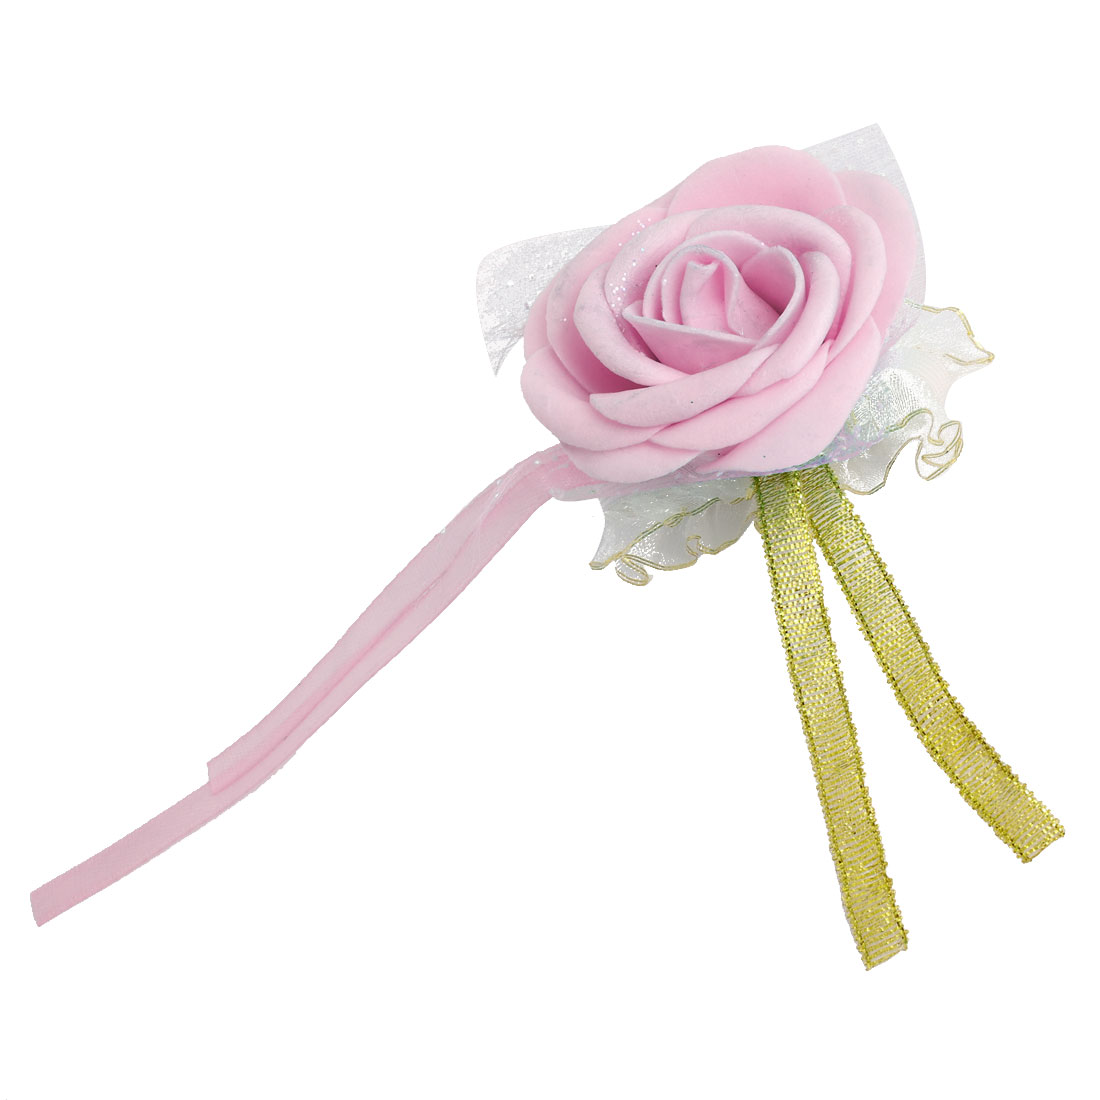 Wedding Party Foam Rose Shaped Bridesmaid Hand Decoration Artificial Wrist Flower Light Pink